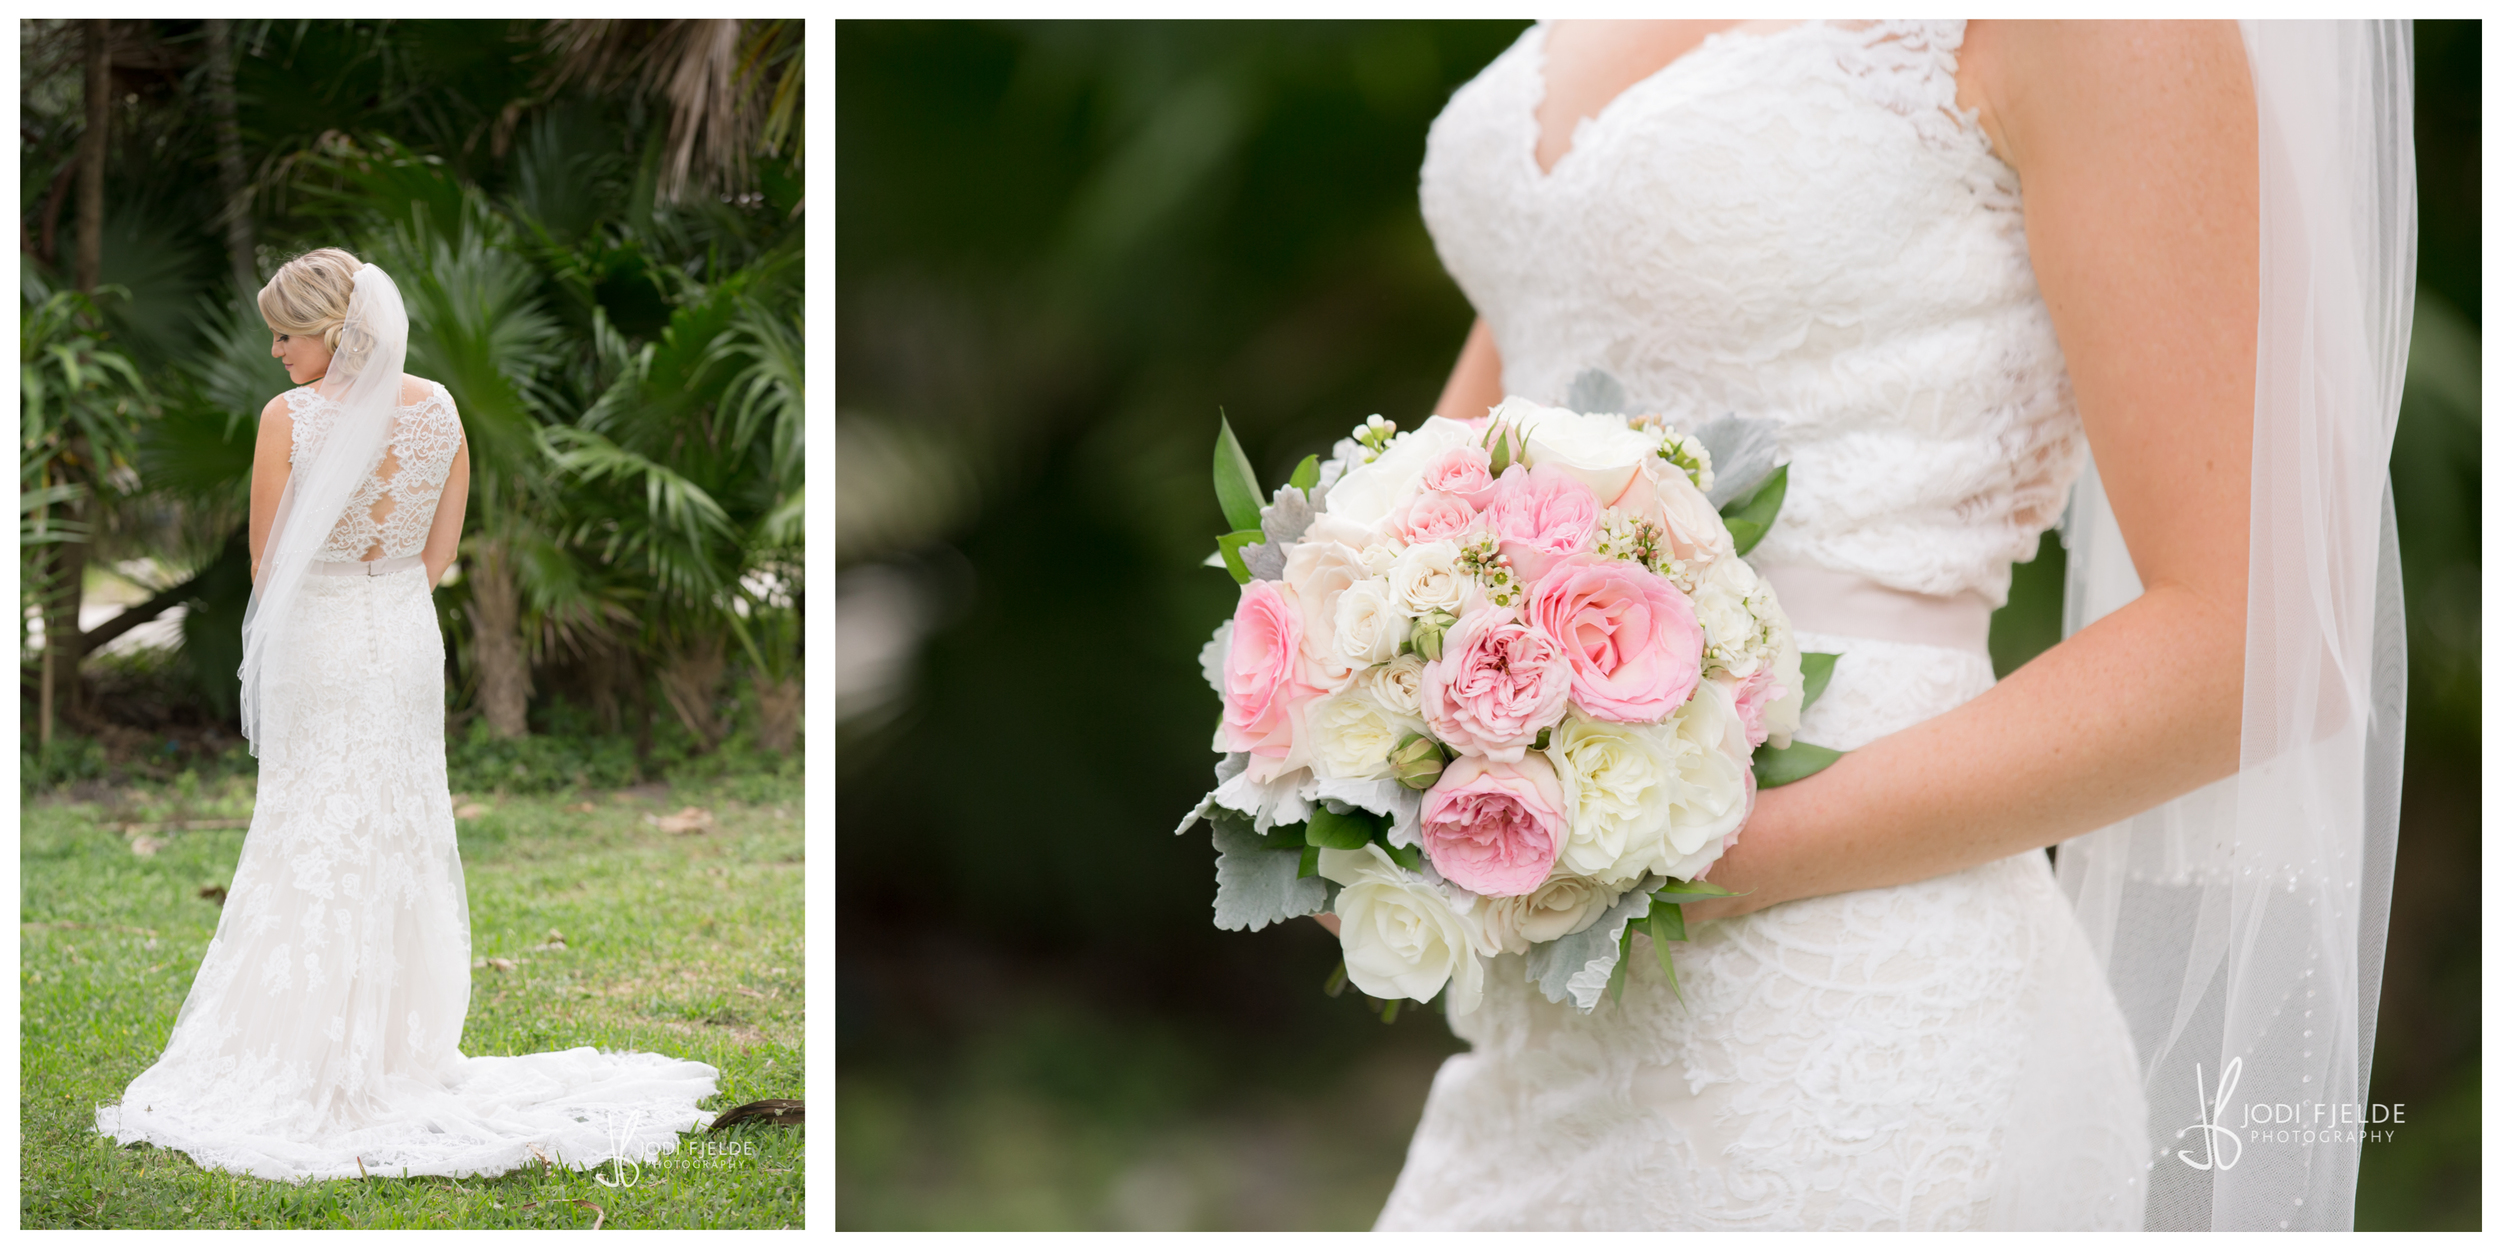 Cocconut_Cove_&_ Marina_ wedding_Kalie_and_Kurt 15.jpg